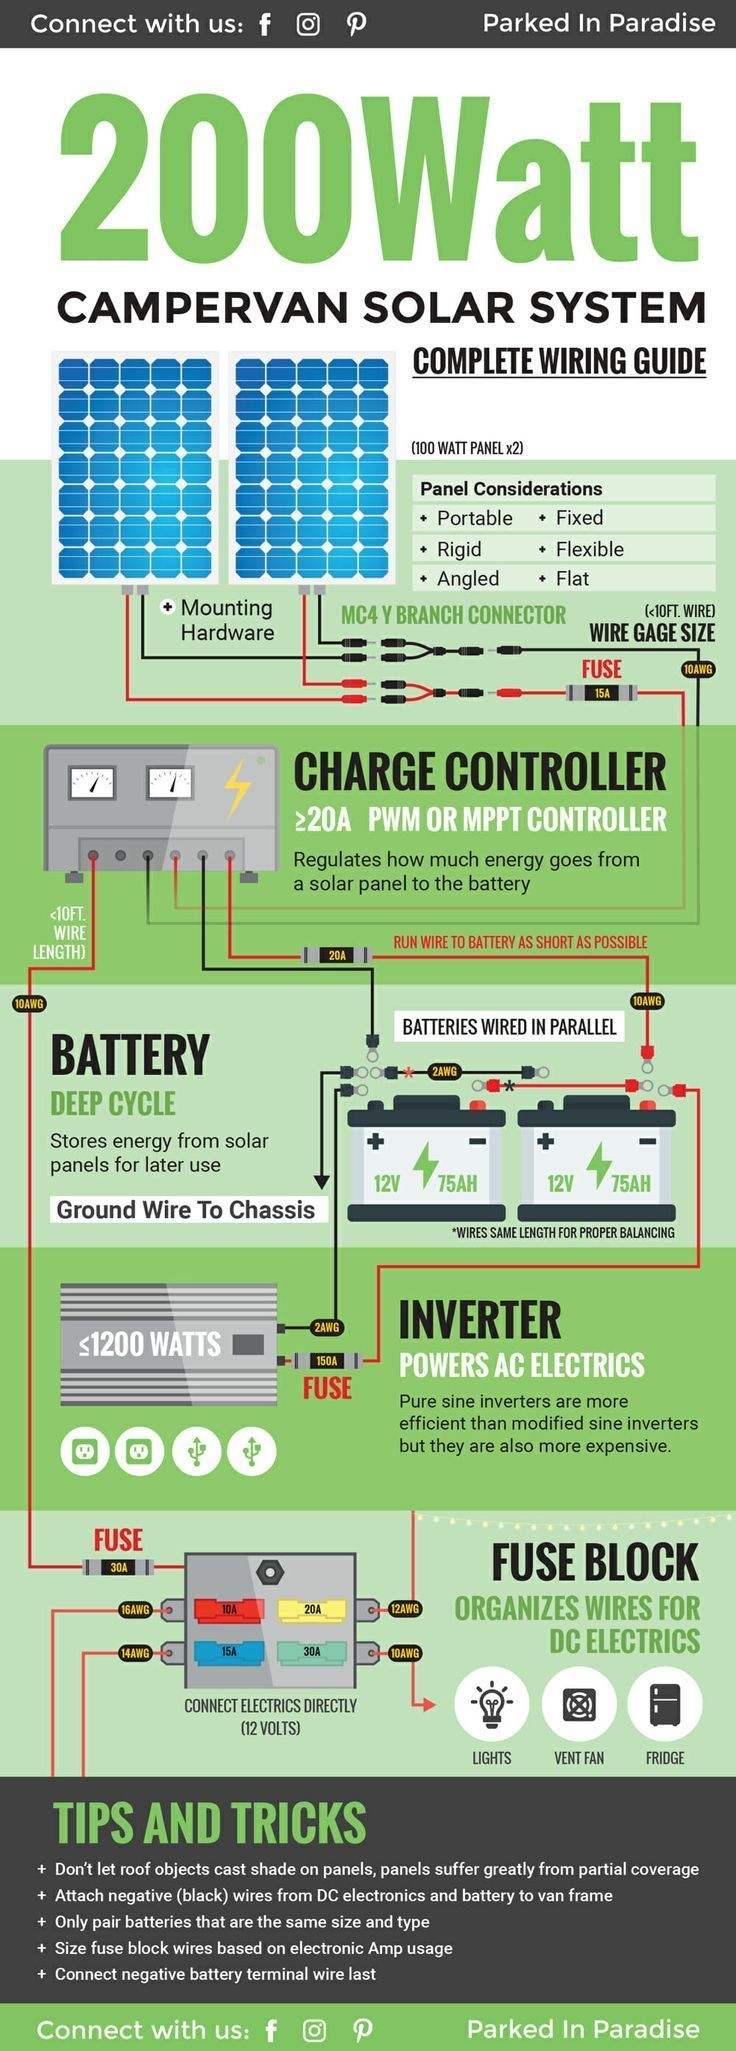 Complete Diy Wiring Guide For A 200 Watt Solar Panel System Perfect For A Campervan Build I Need To Save This For Wh Alternative Energy Van Life Solar Panels